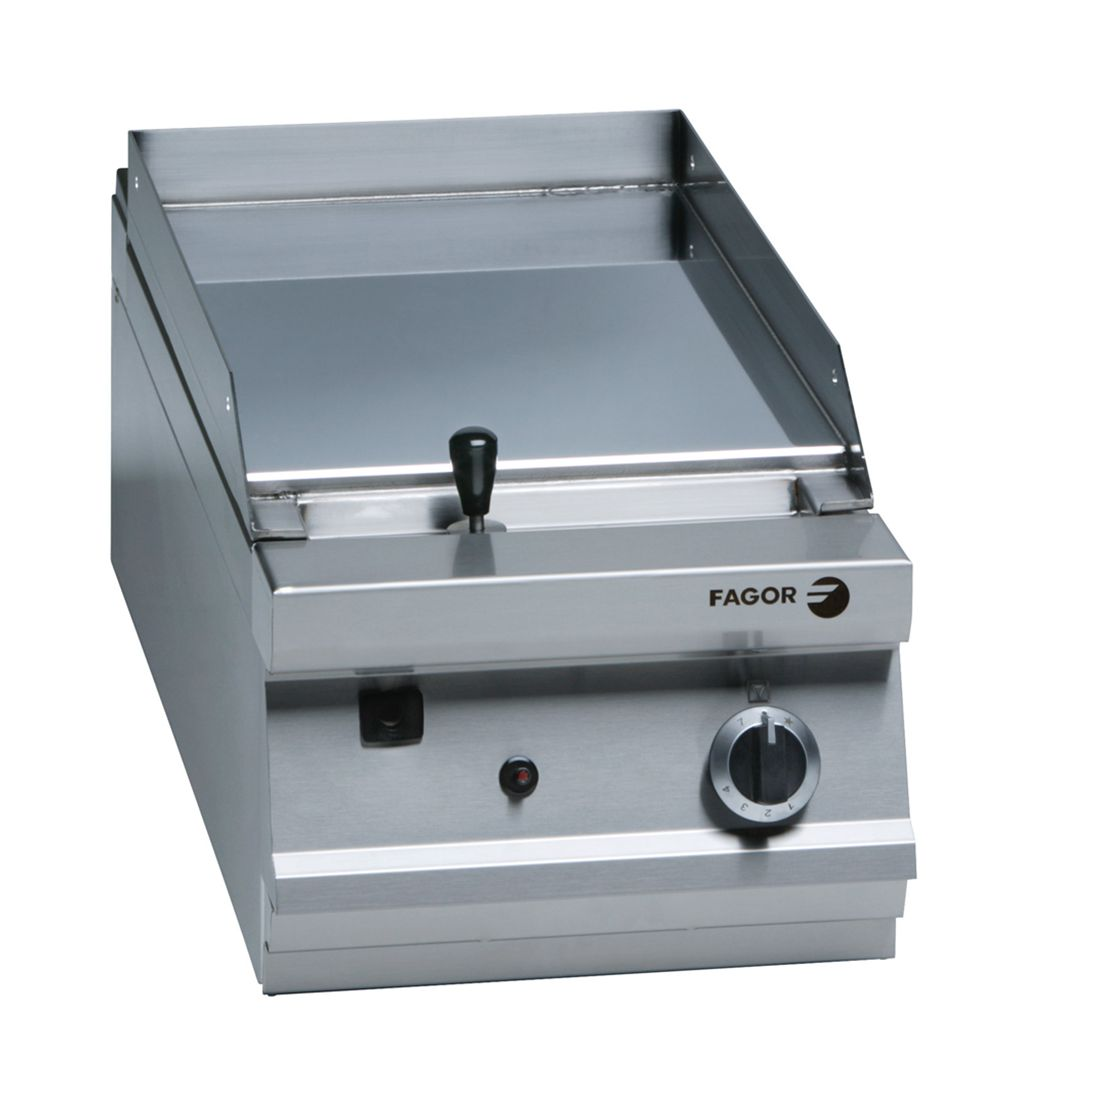 Fagor 900 series natural gas chrome 1 zone fry top FTG-C9-05L